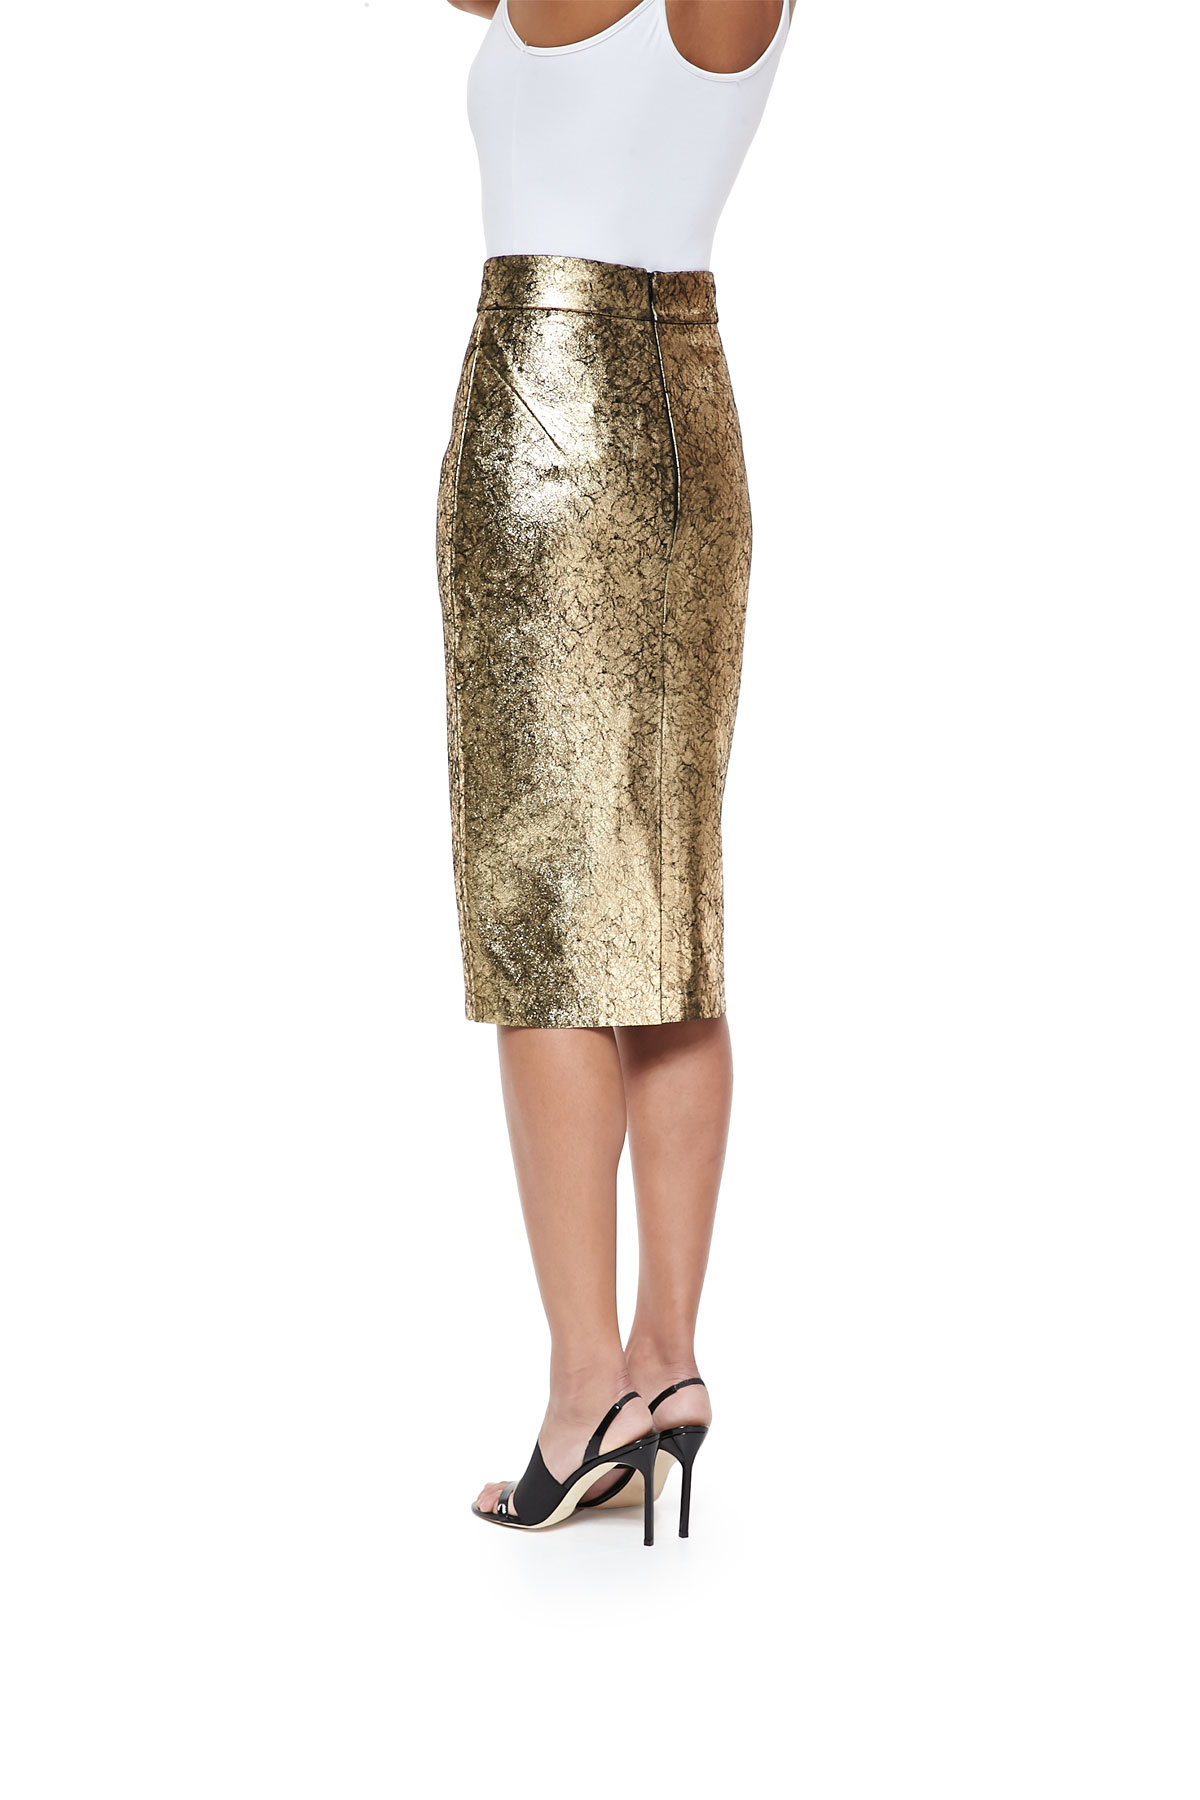 6408fccd66d Lyst - Raoul Metallic Leather Pencil Skirt in Metallic